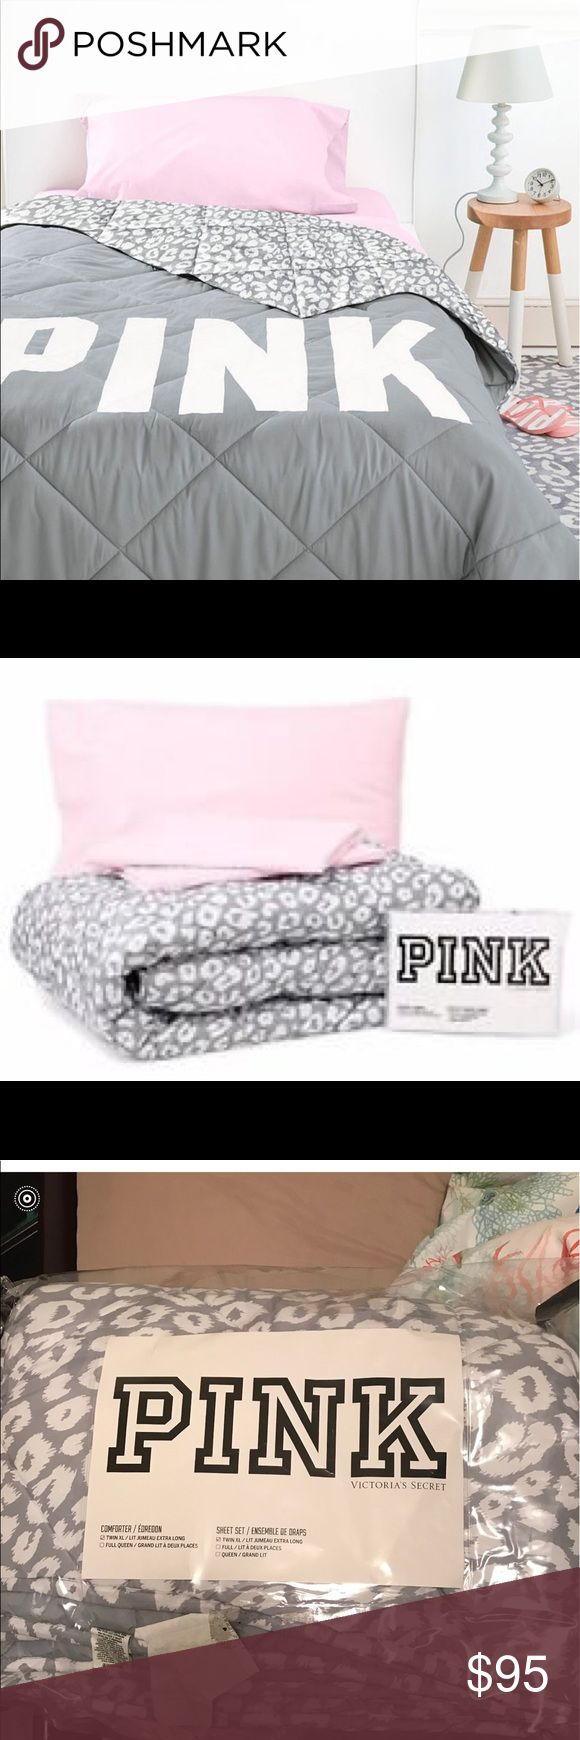 Victorias secret pink bed sets - New Vs Pink Cheetah Bed Set Twin Xl Included Comforter Fitted Sheet Flat Sheet